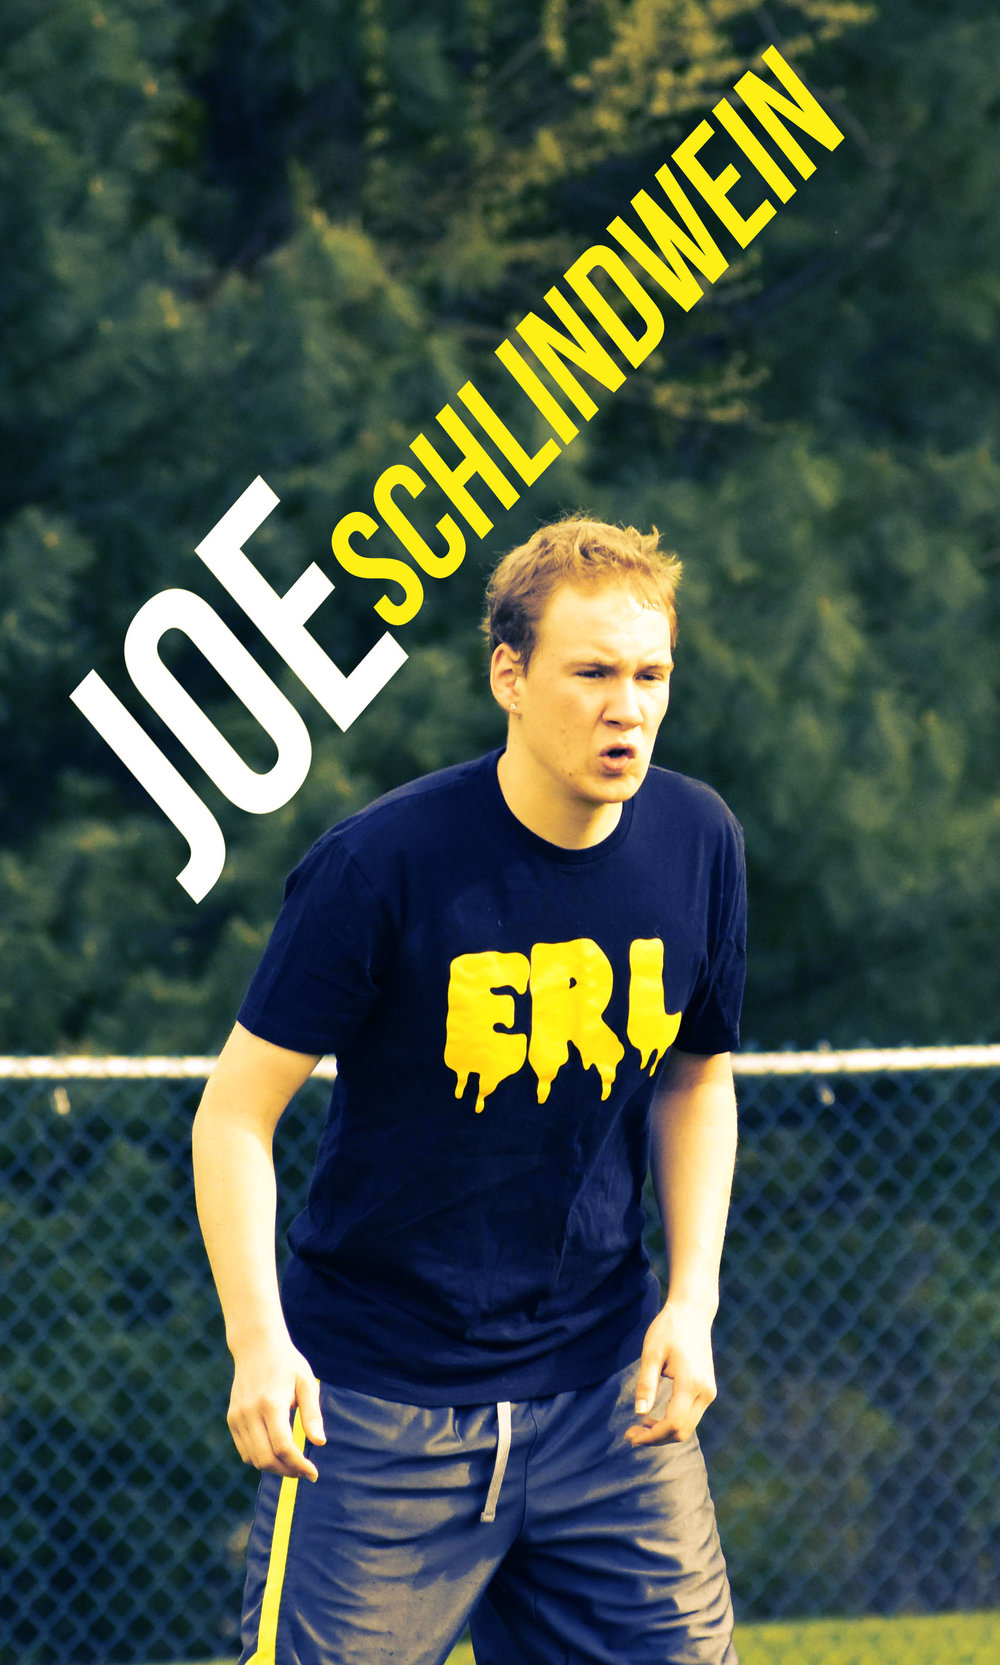 Joe-ERL-conceptcropped.jpg